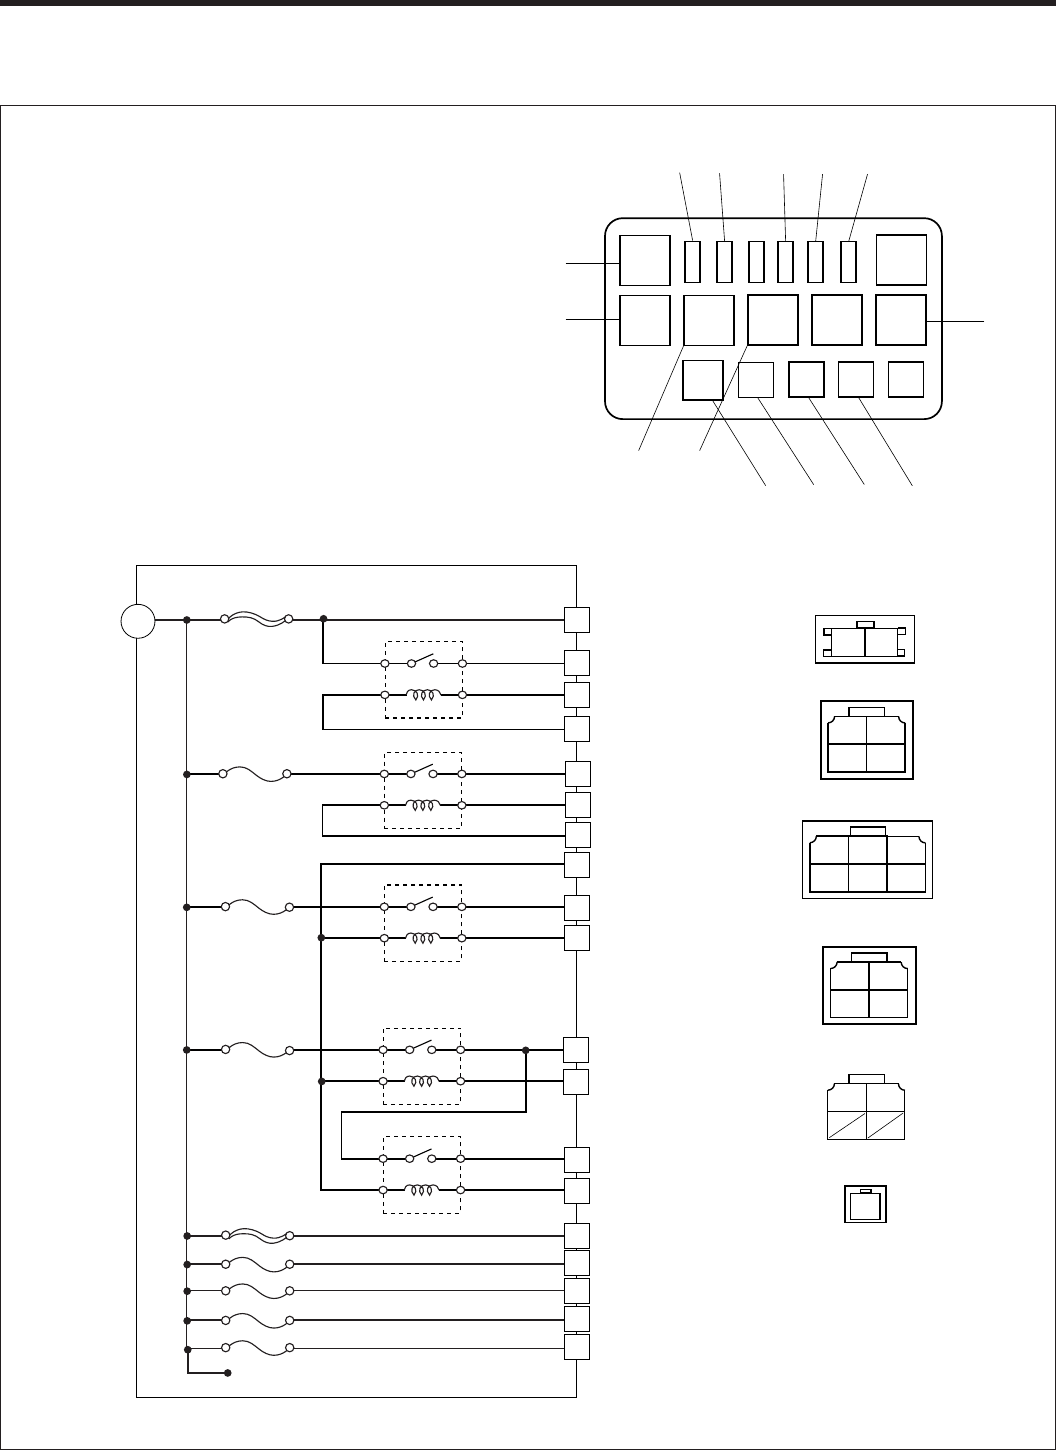 daihatsu sirion fuse box diagram daihatsu terios 1997 wiring diagram | wiring diagram